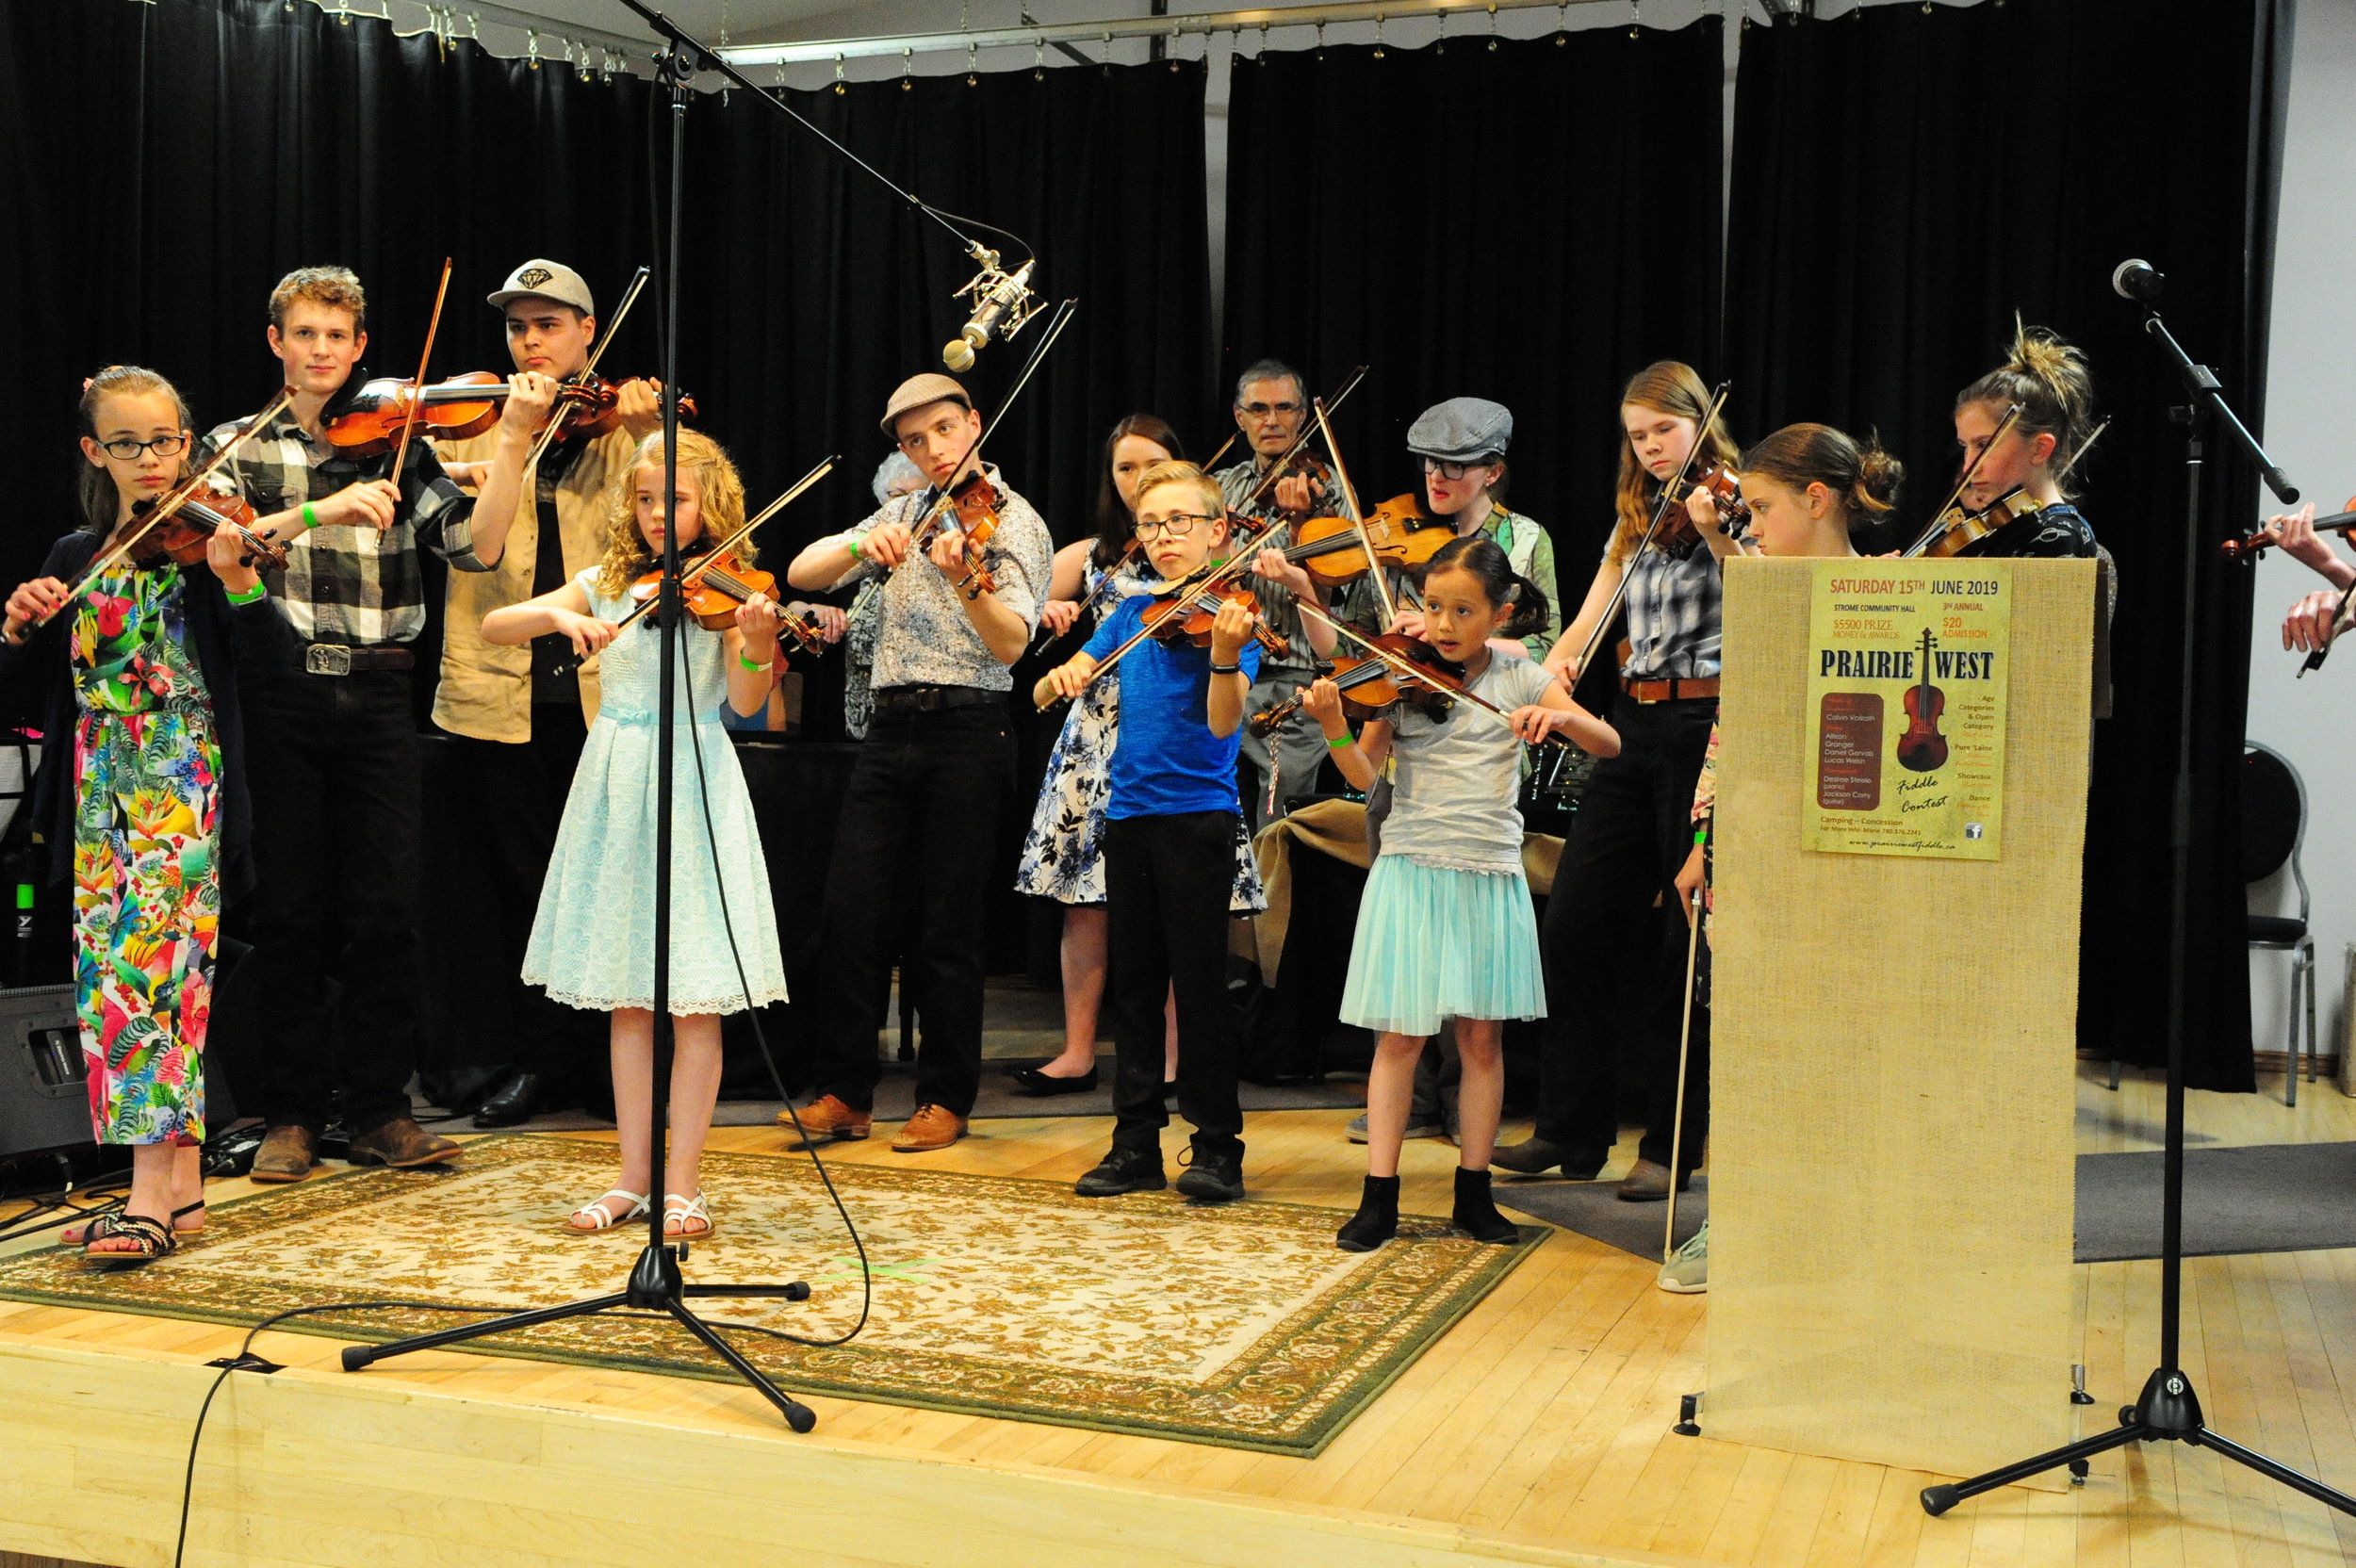 Prairie West Fiddle Contest 2019 108.JPG